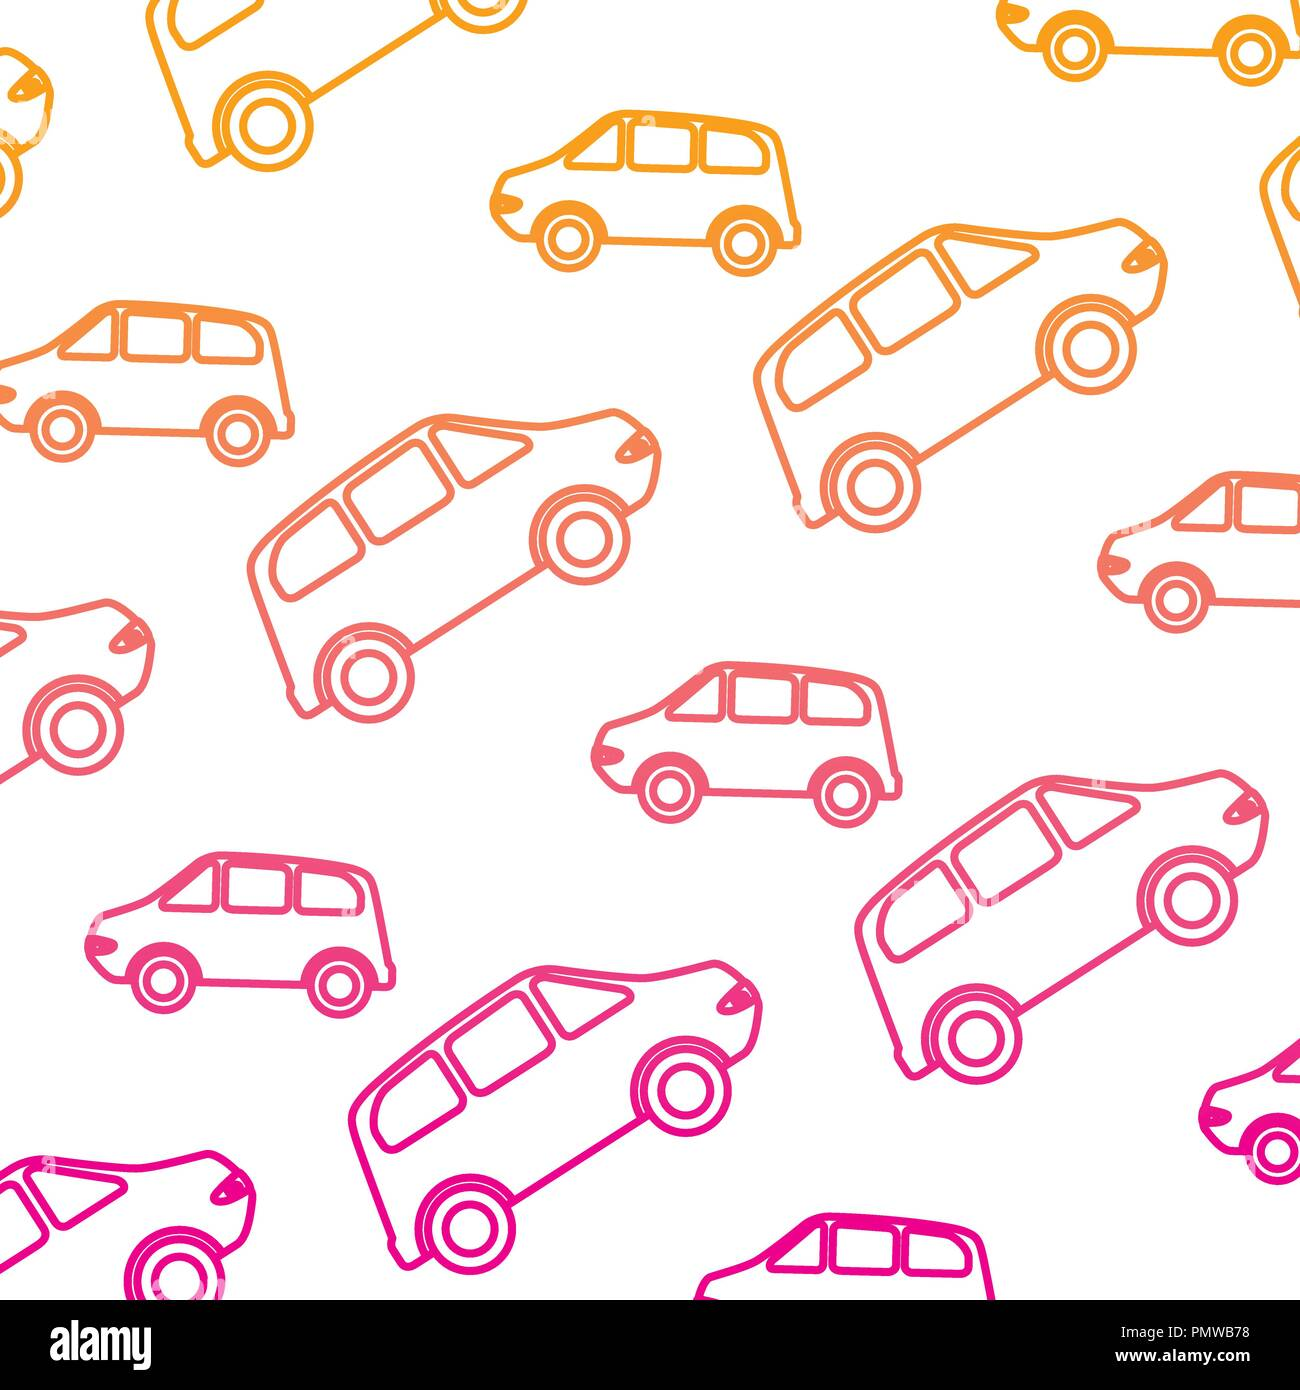 cars vehicles pattern background Stock Vector